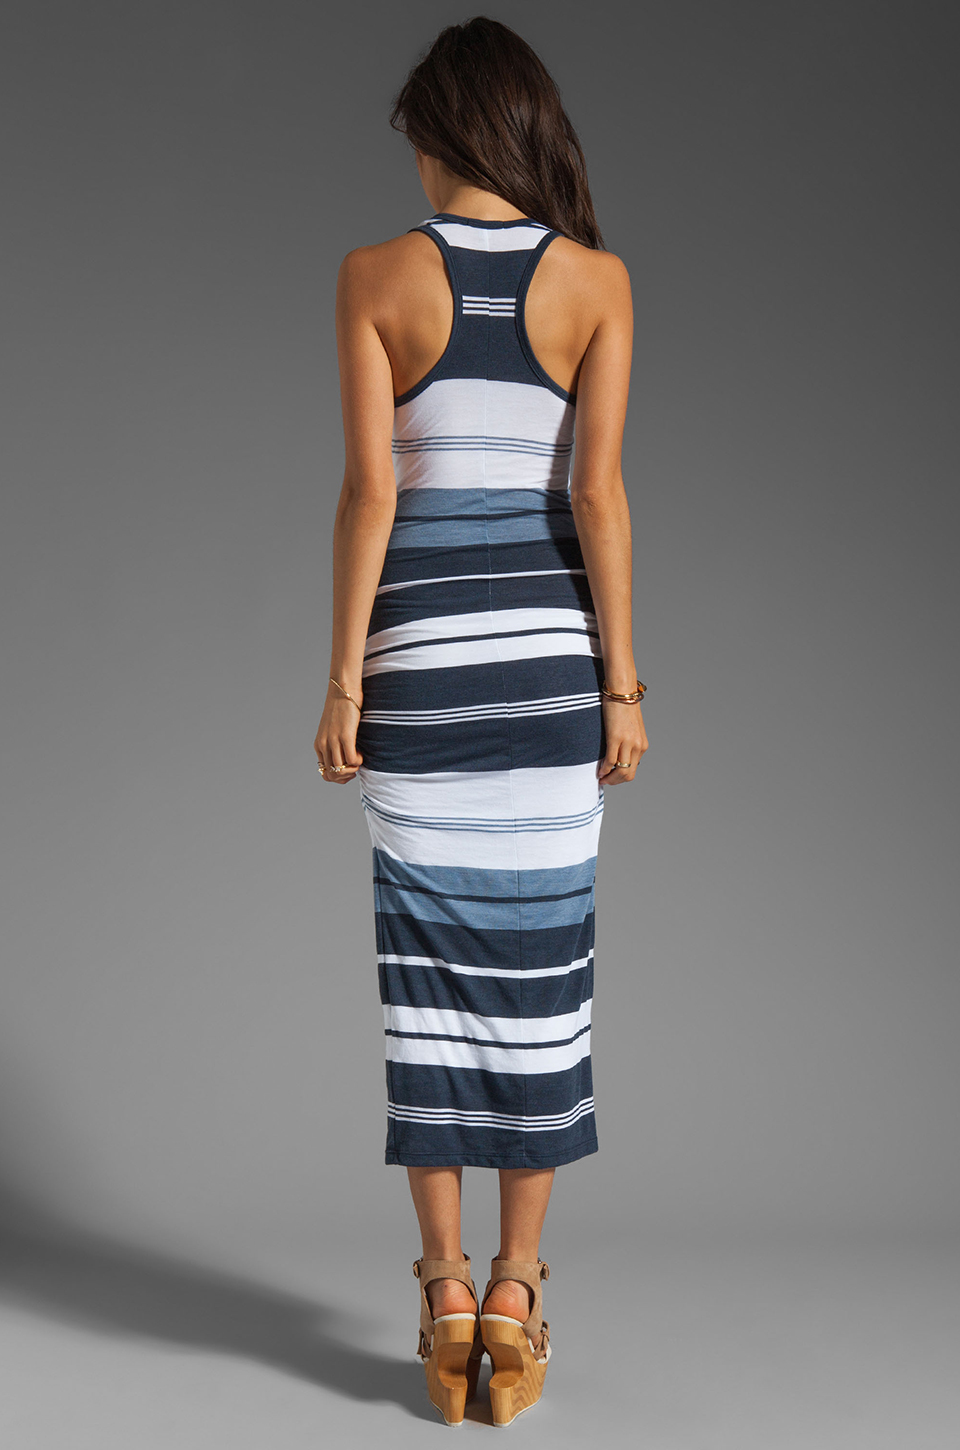 James Perse Pacific Stripe Racerback Dress in Navy/White